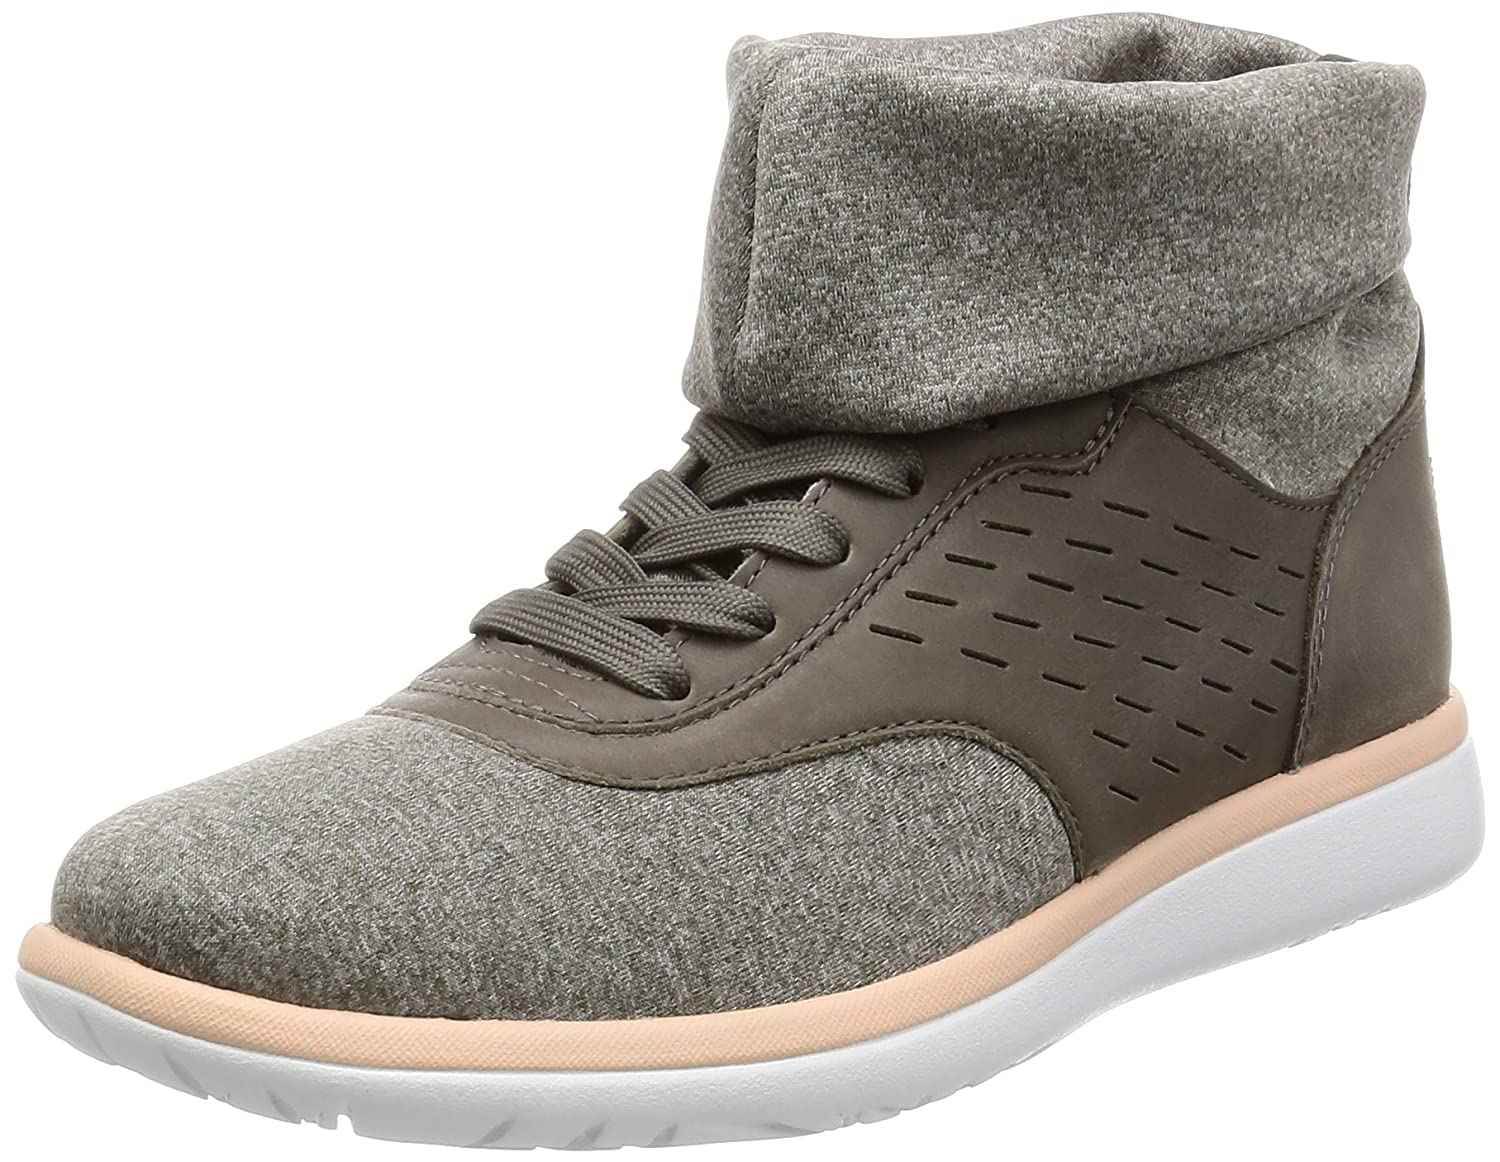 Ugg Australia s Women s Synthetic Islay Women High-Top s Brown High-Top Sneakers Synthetic Gris 5f7e6f4 - boatplans.space